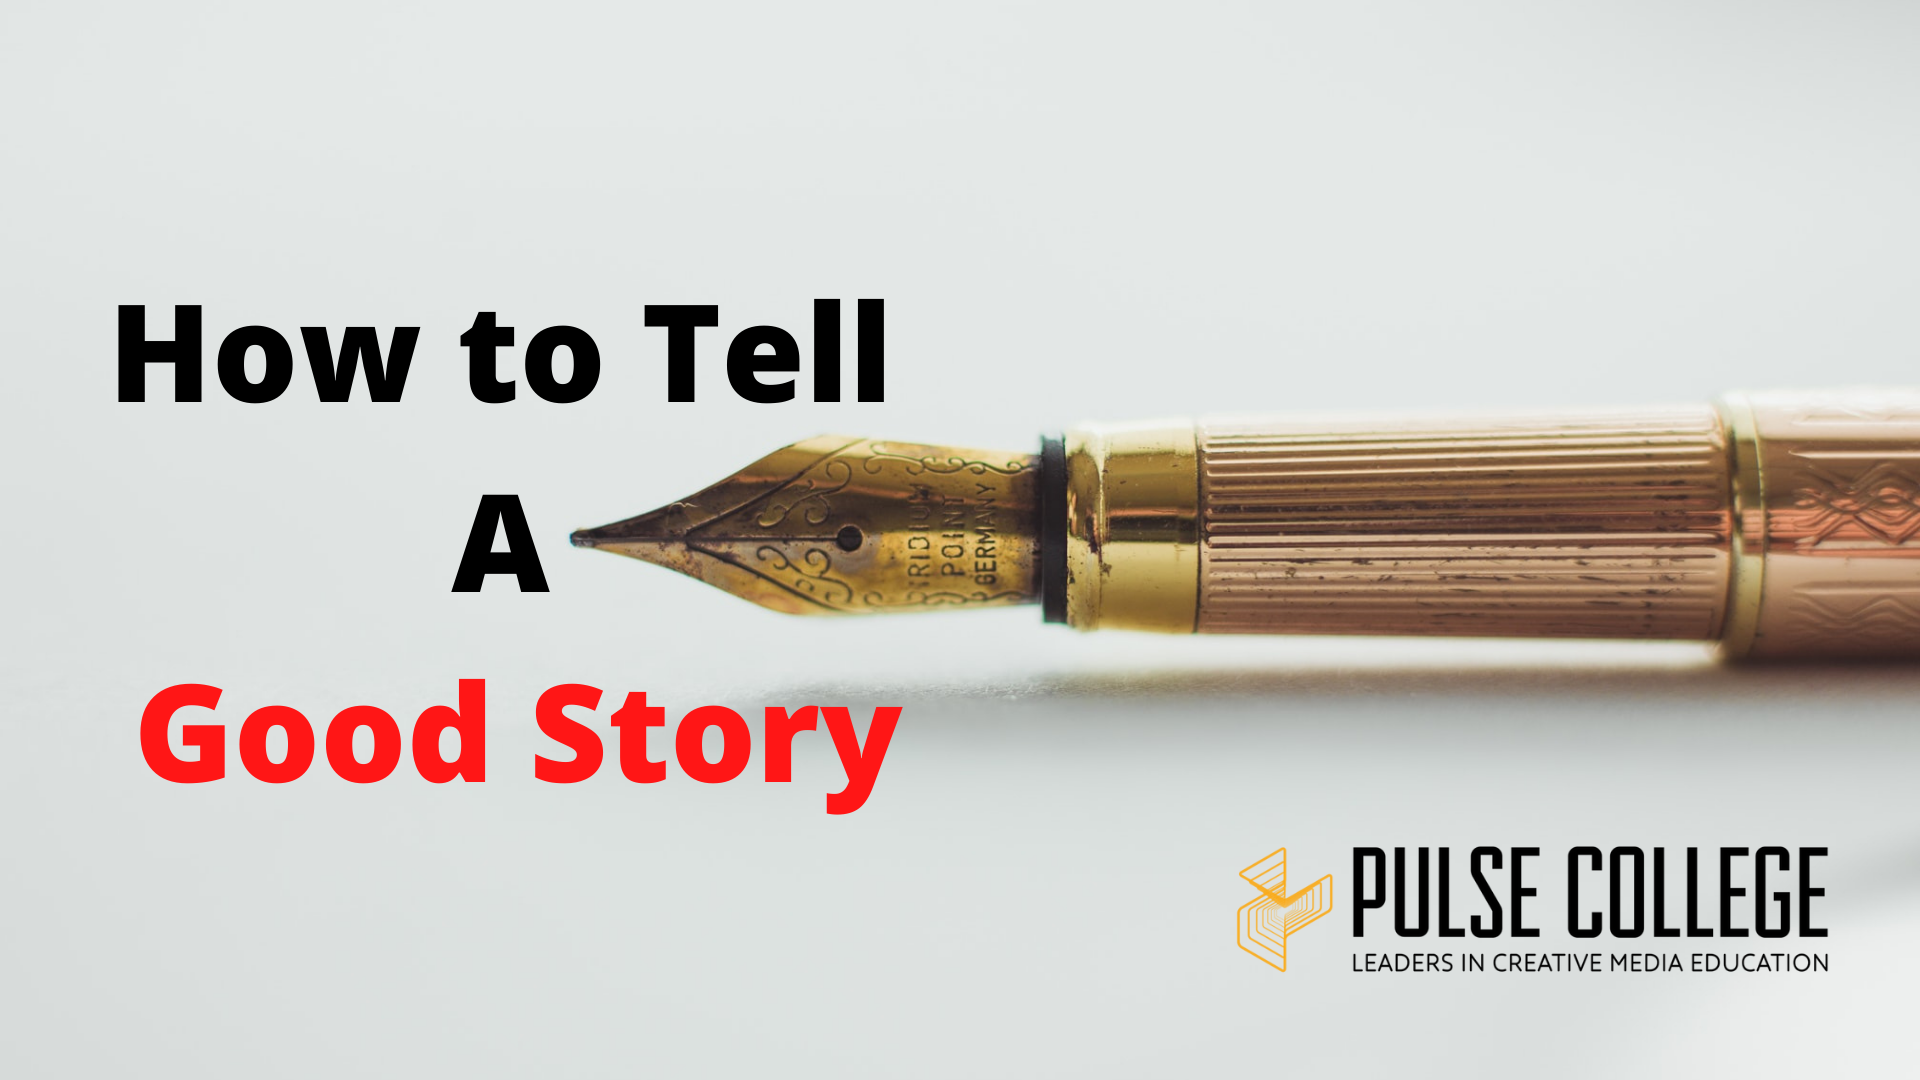 How to tell a good story